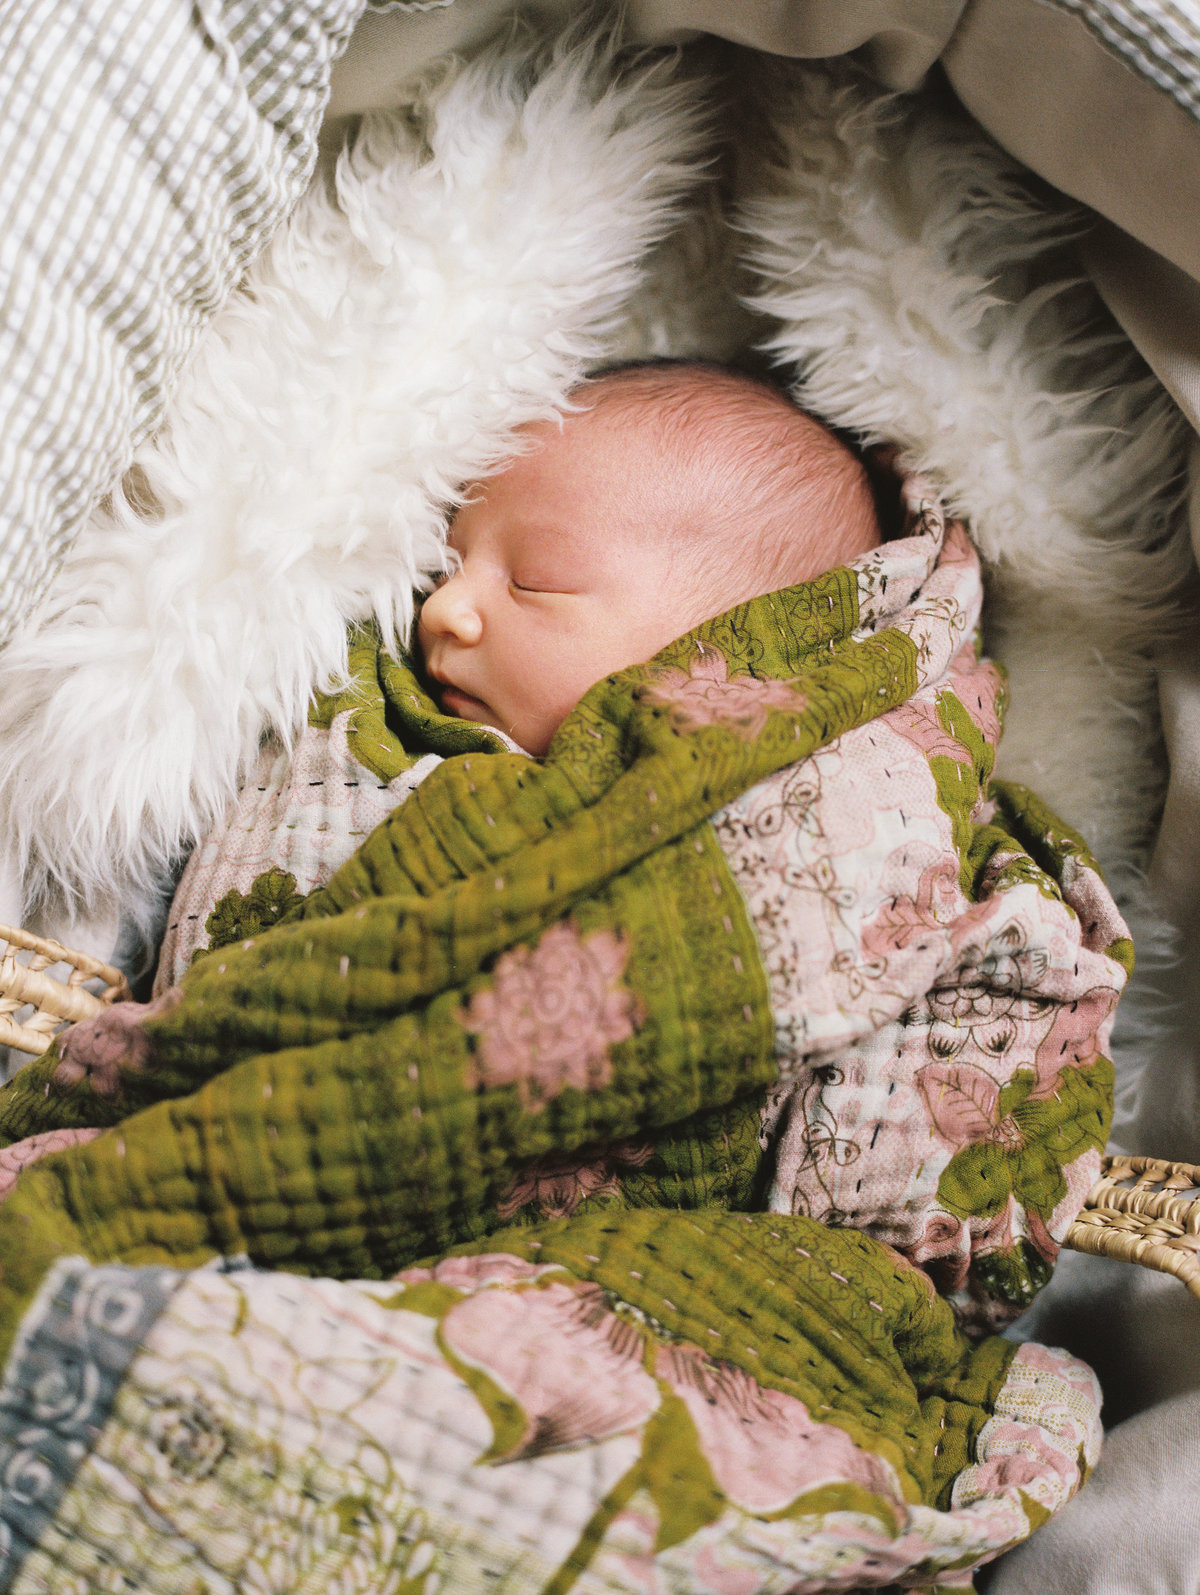 newborn baby wrapped in blankets sleeping